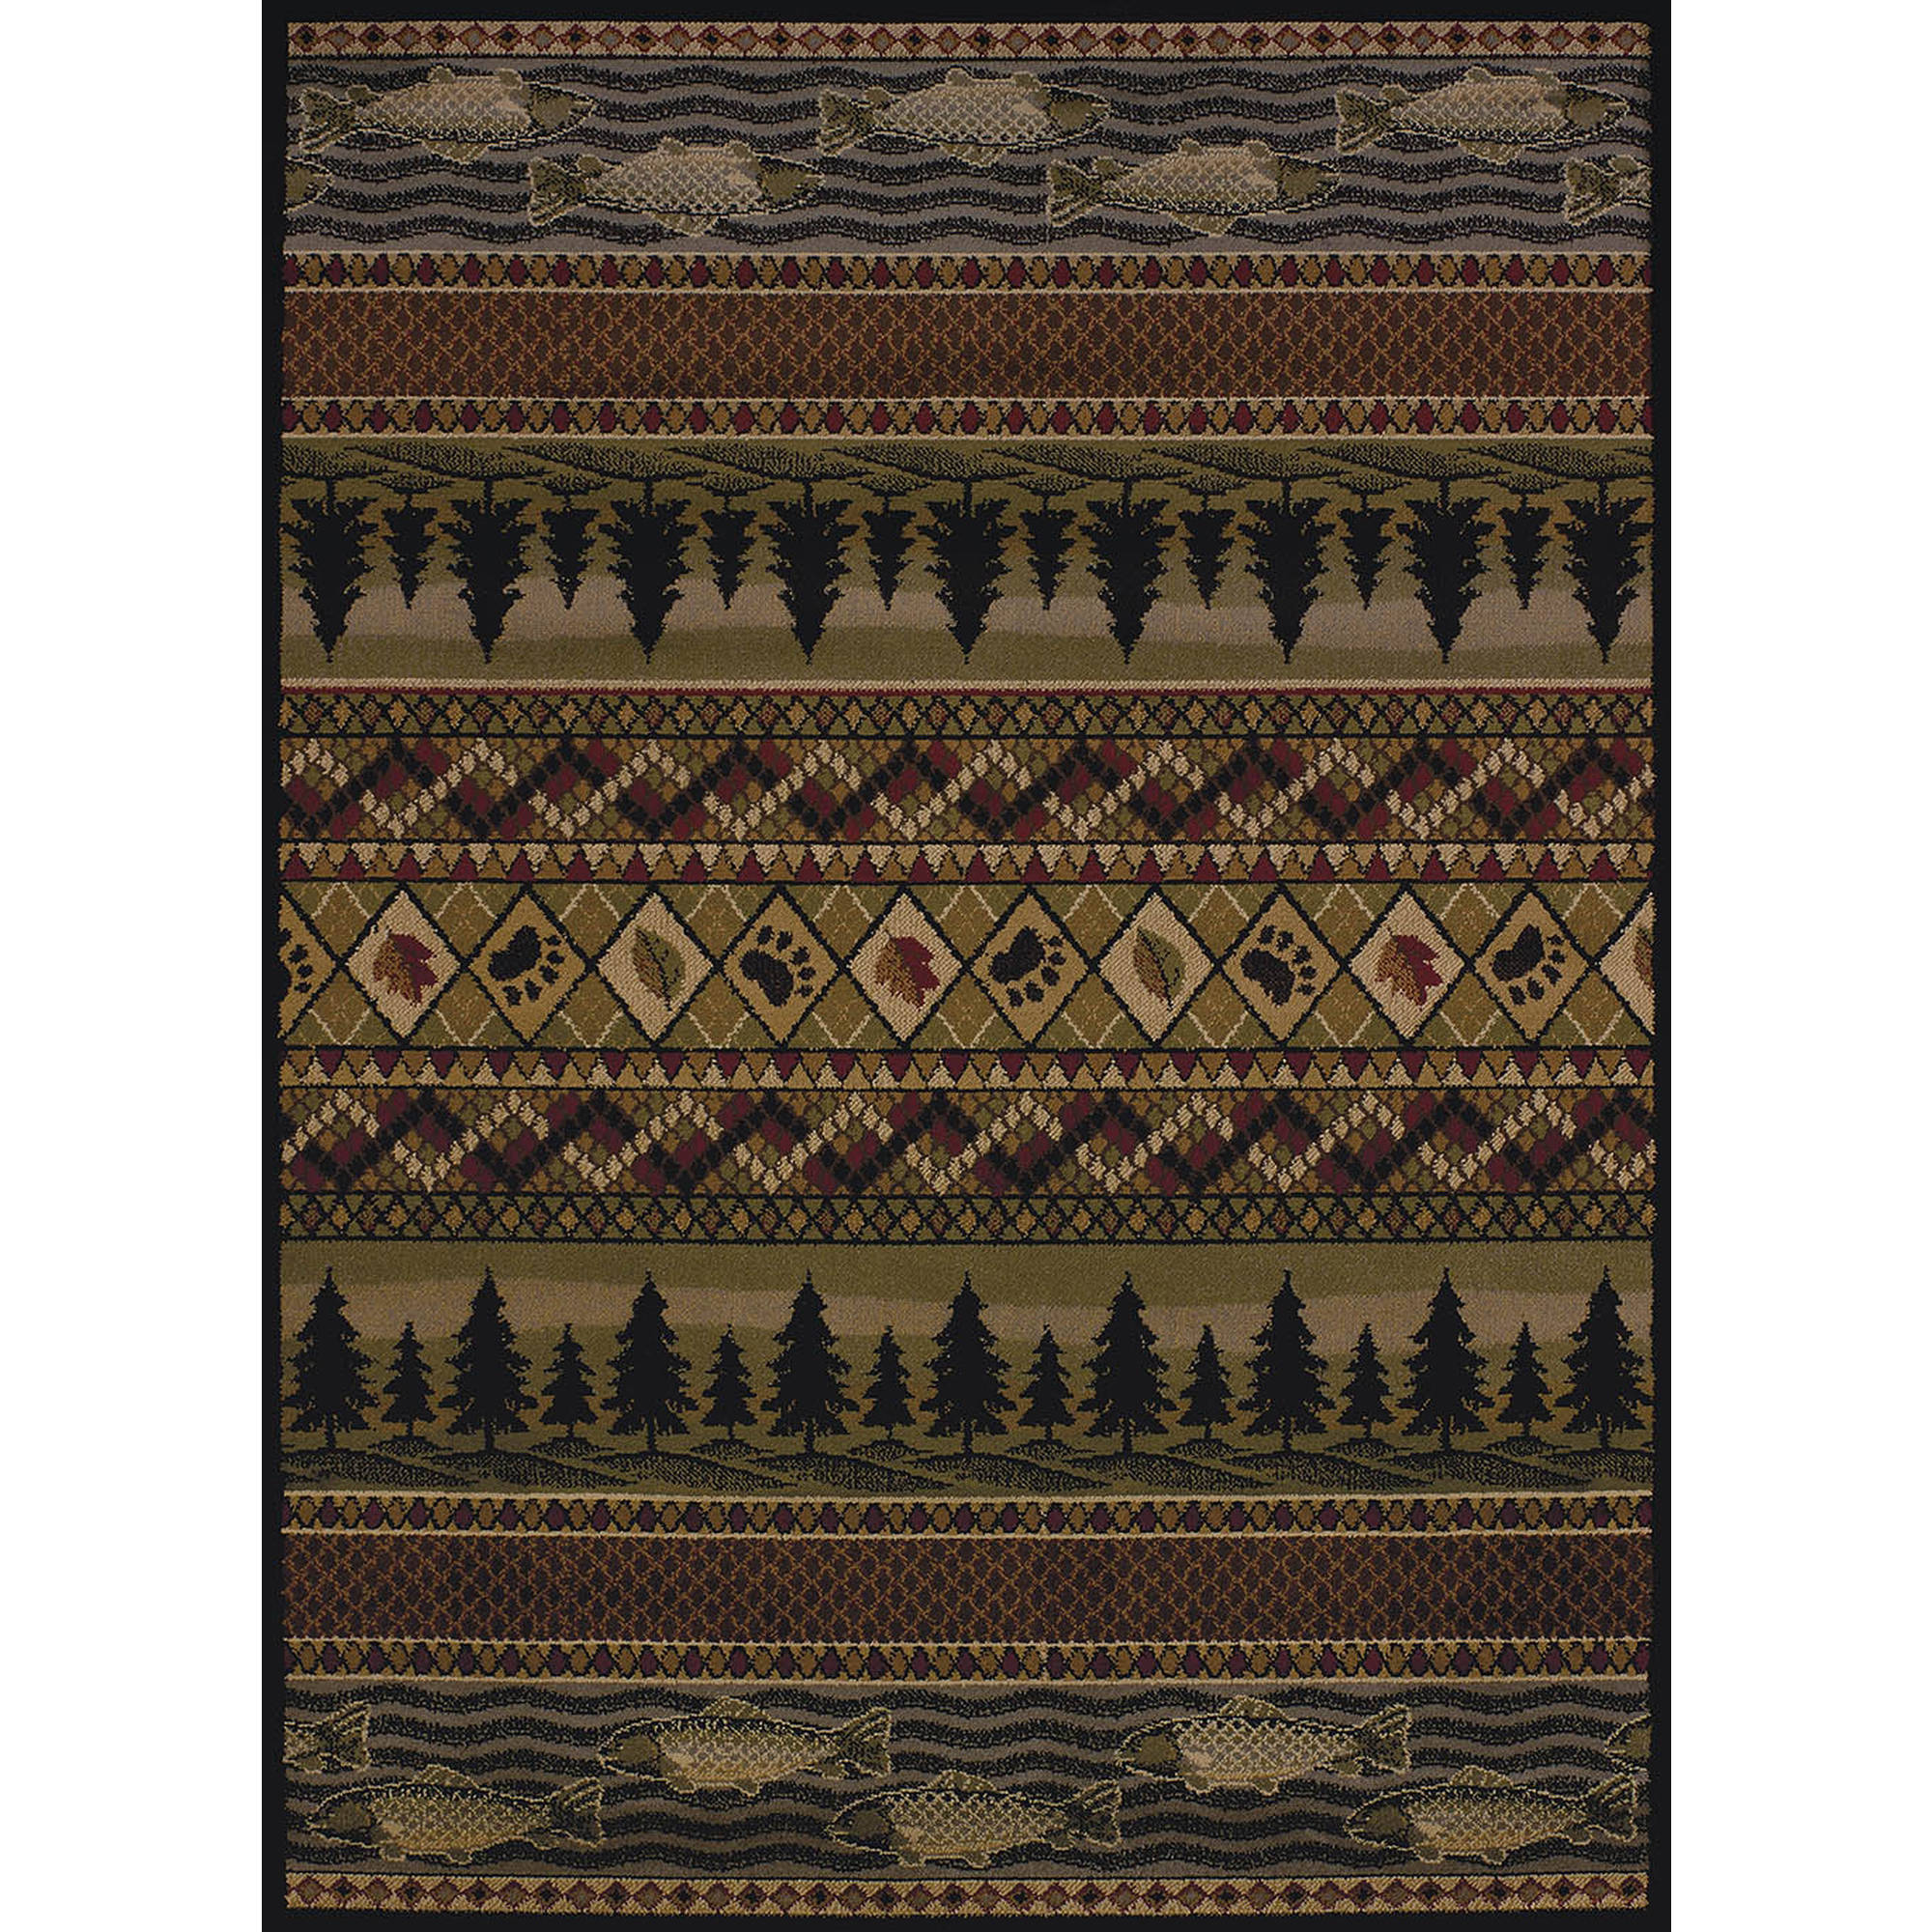 United Weavers Essence Mountain Pine Lodge Multi Woven Polypropylene Area Rug